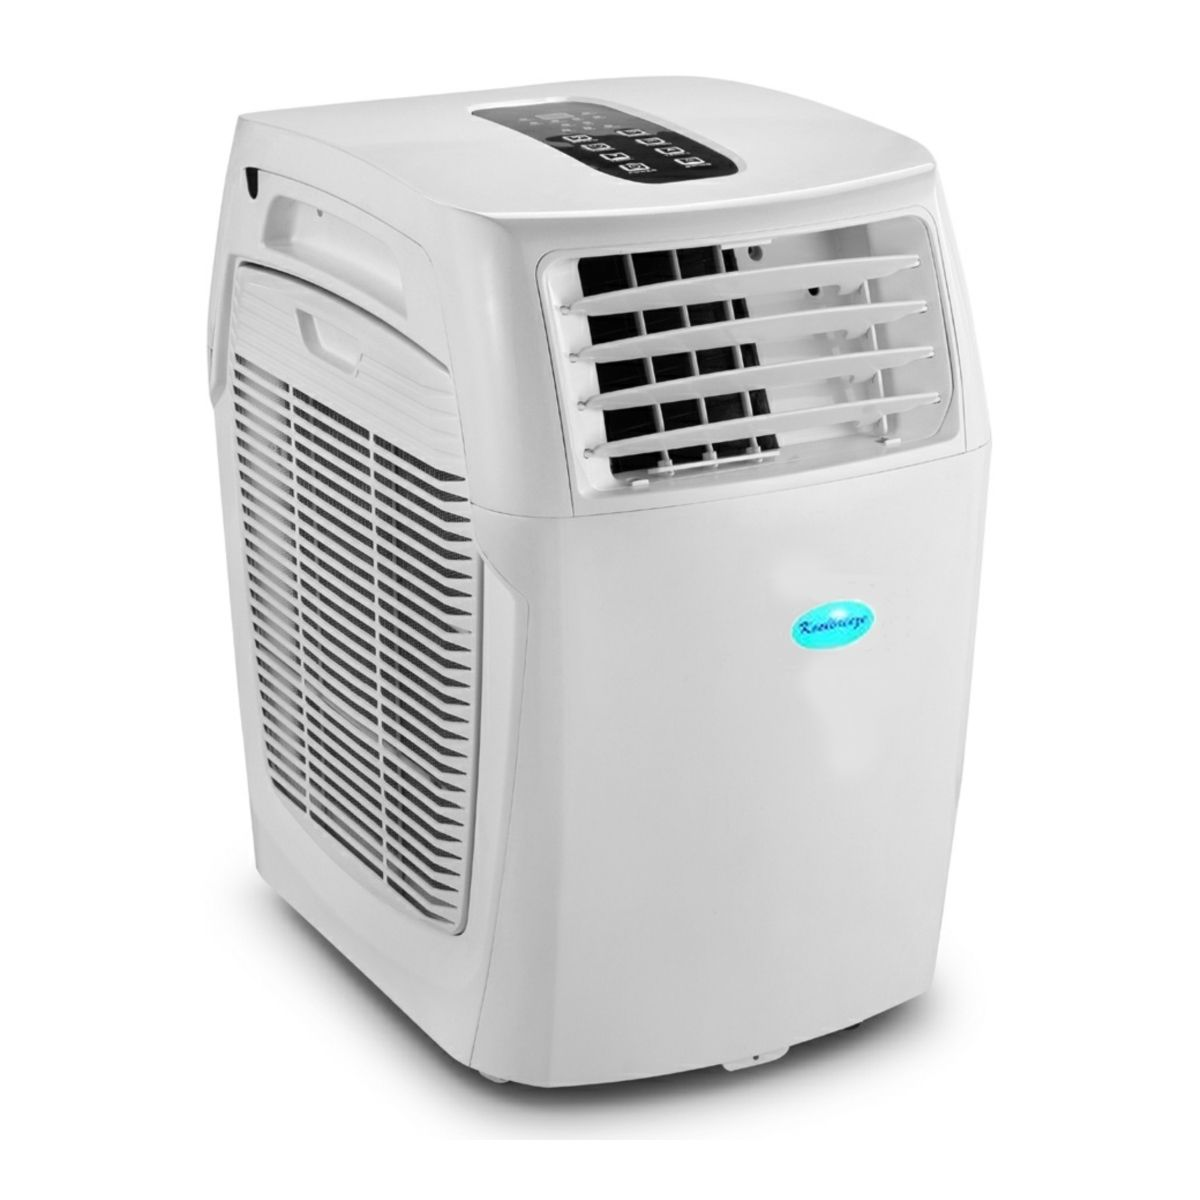 Portable Heat And Air Units : Climateasy compact heating and cooling portable air